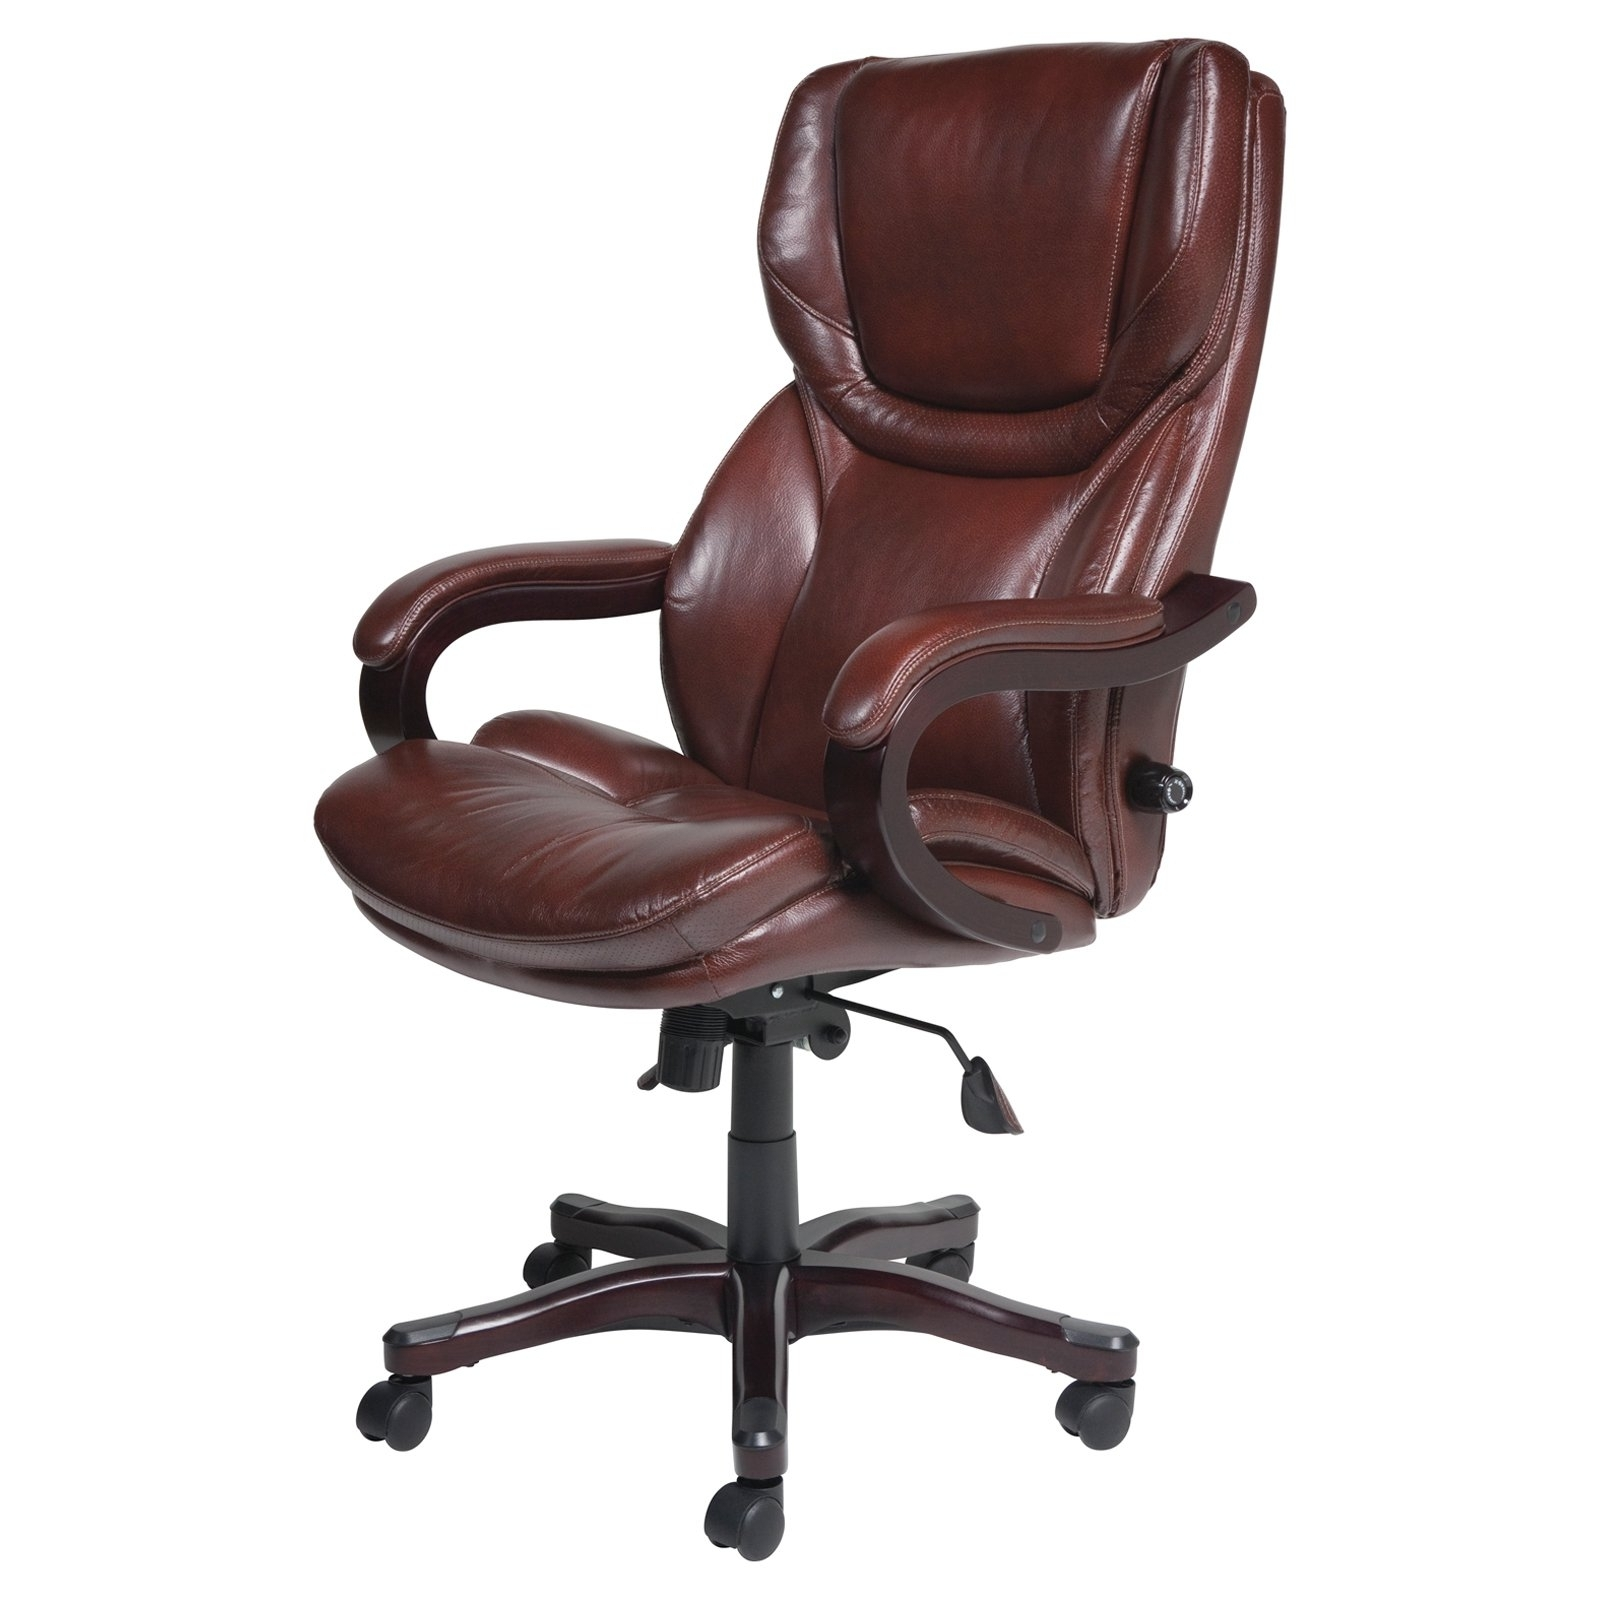 Most Recent Chair : Ergonomic Black Leather Executive Office Chair Verona Within Brown Executive Office Chairs (View 3 of 20)